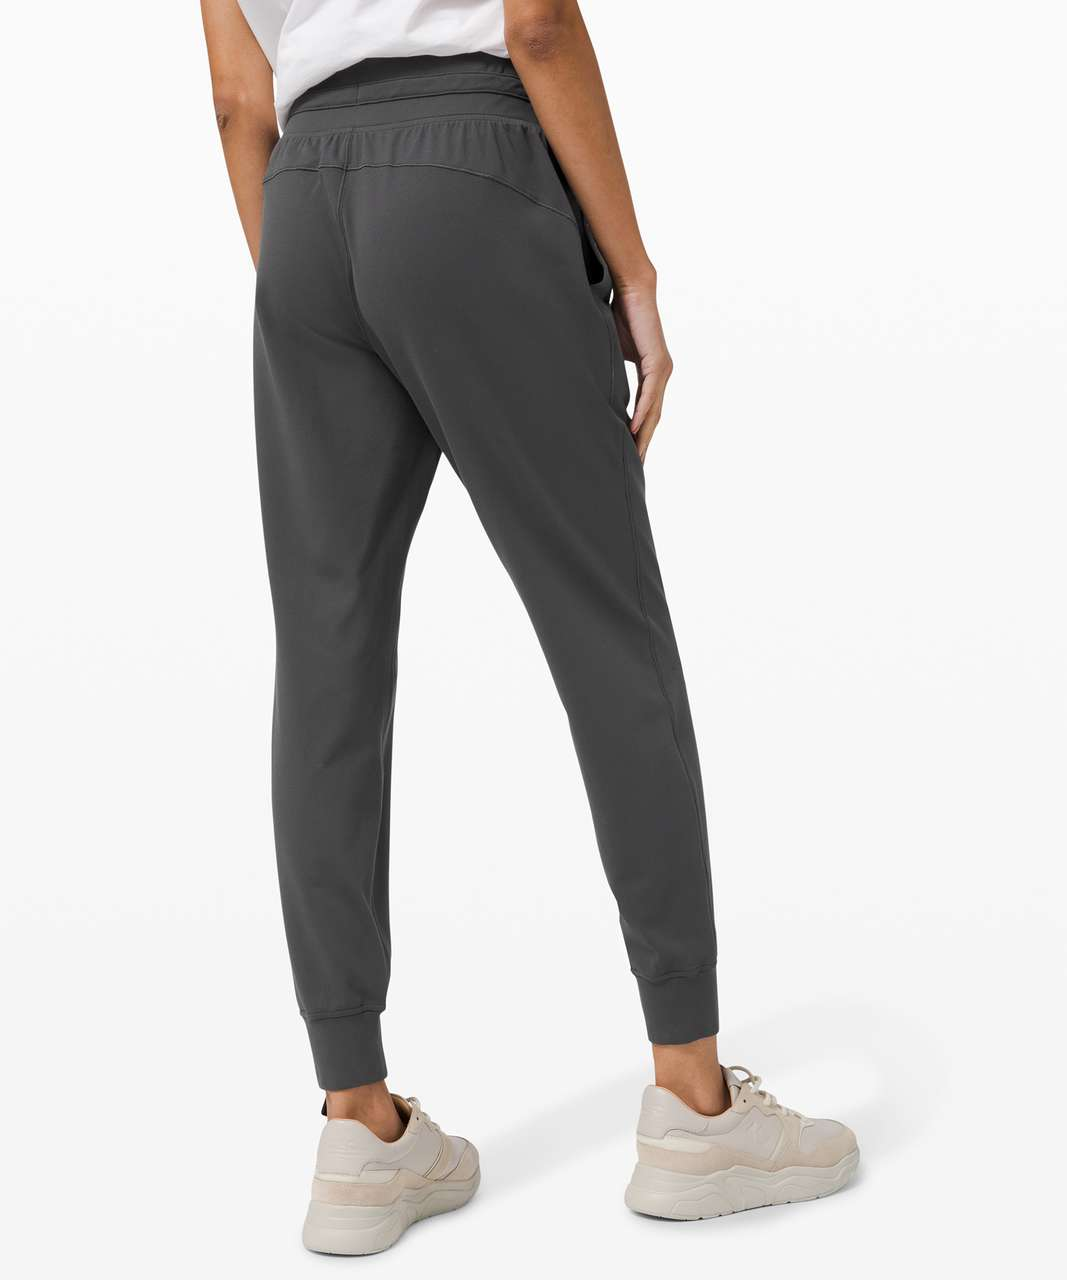 Lululemon Ready to Rulu 7/8 Jogger - Graphite Grey (First Release)